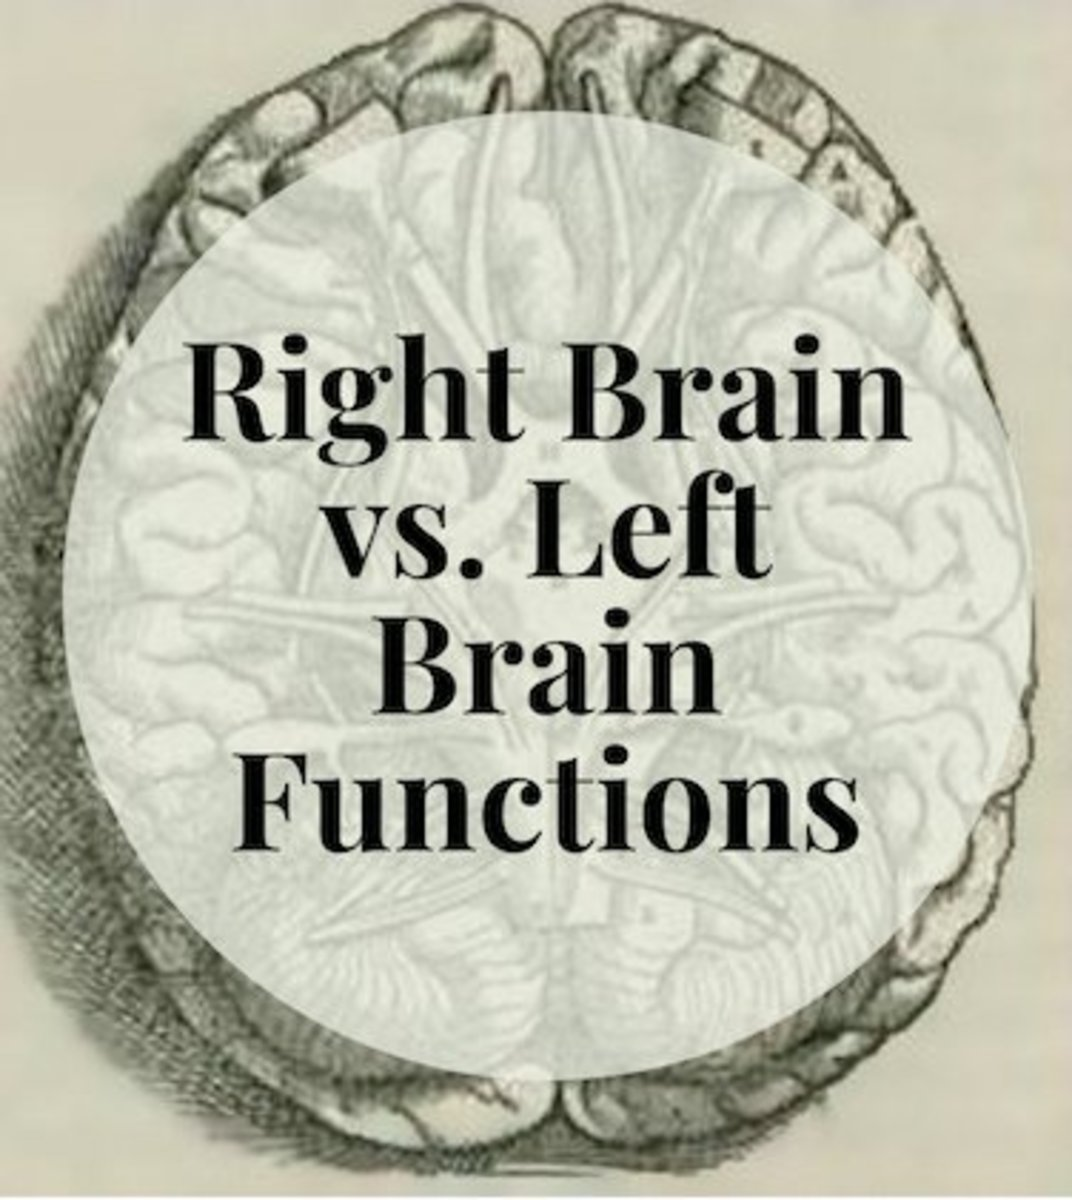 Learn the different unique characteristics of the right and left brain.